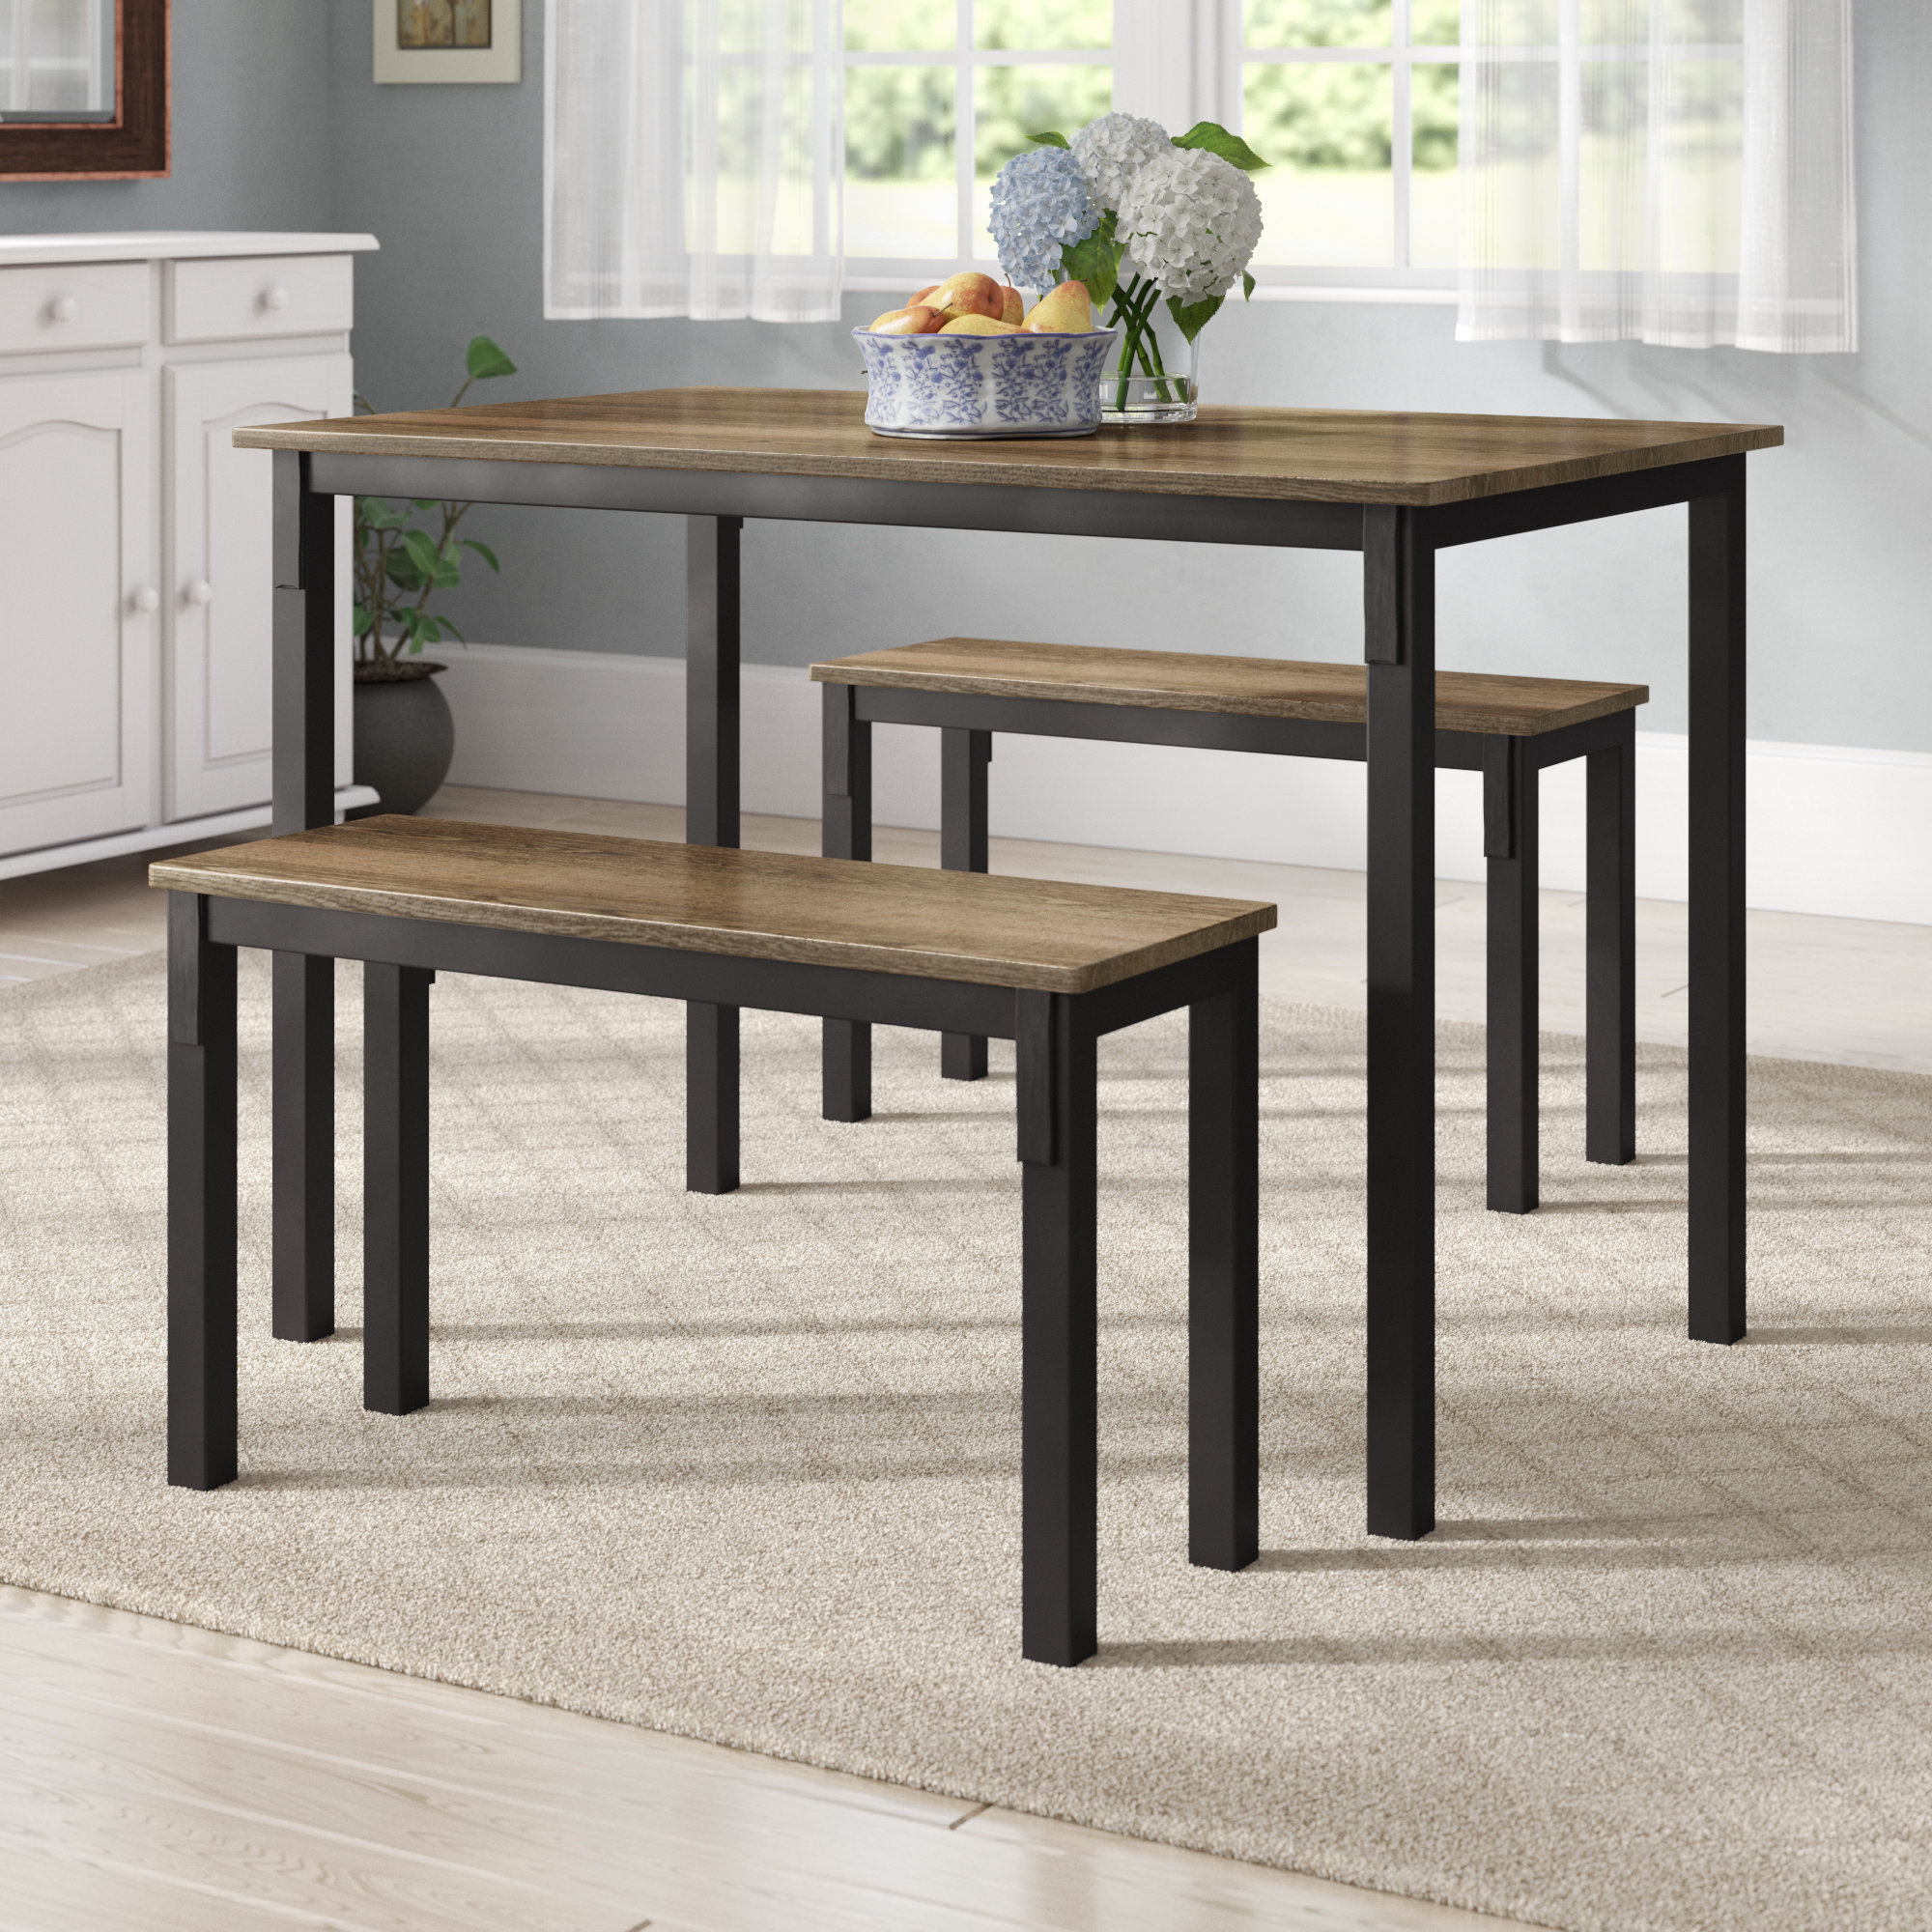 Well Liked Partin 3 Piece Dining Sets Throughout Andover Mills Rossiter 3 Piece Dining Set & Reviews (View 24 of 25)